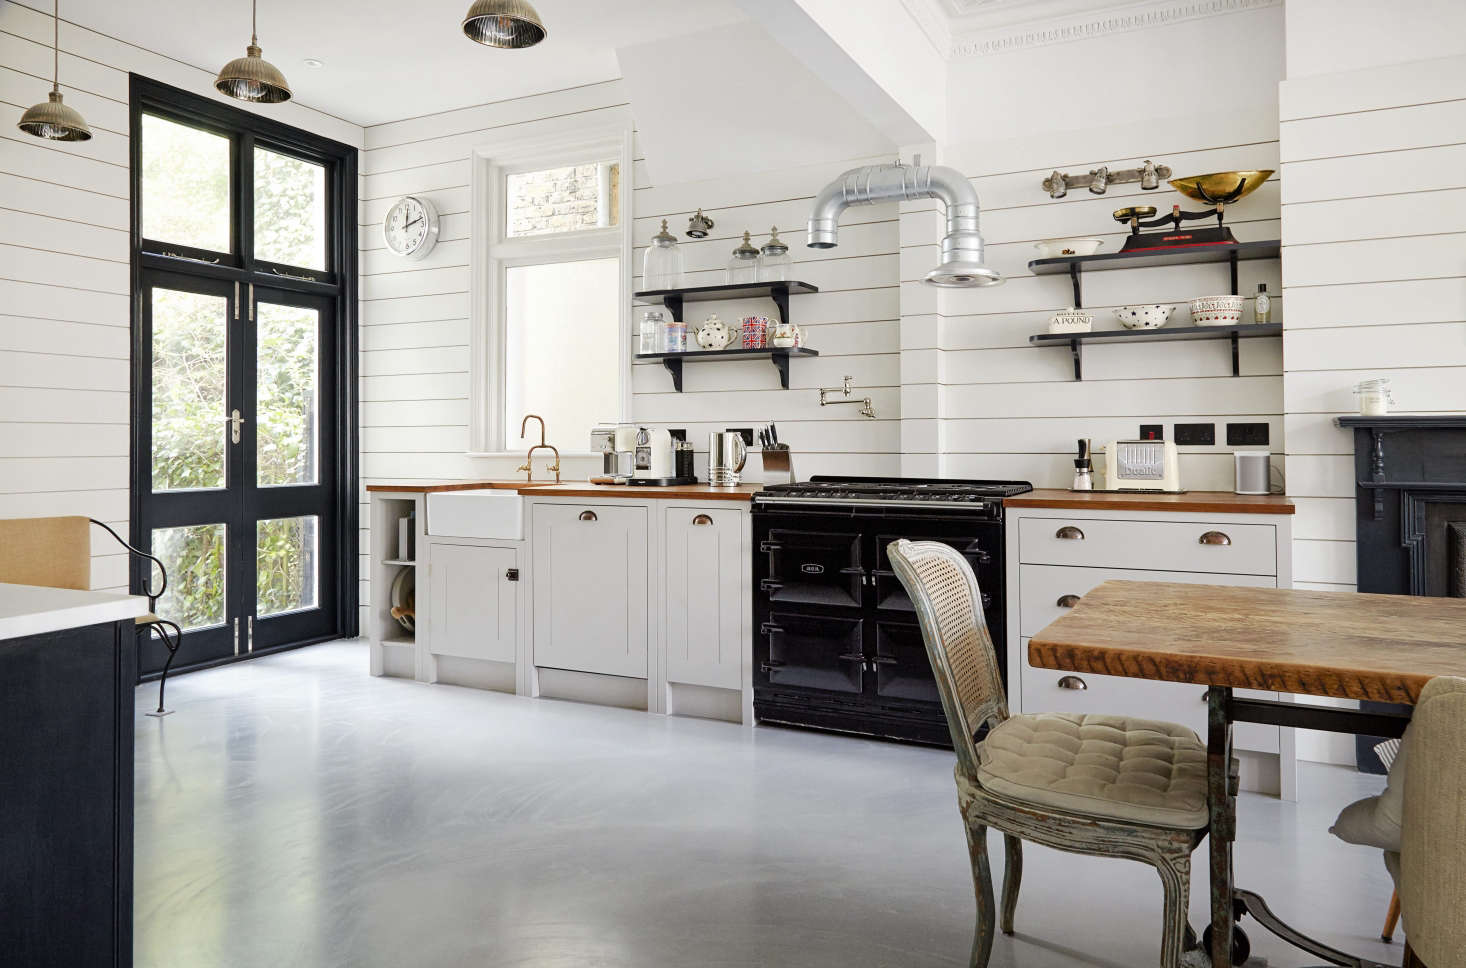 Glass-paneled double doors (which lead out to the yard)and the use of shelves in lieu of overhead cabinets keep the space feeling open and airy.